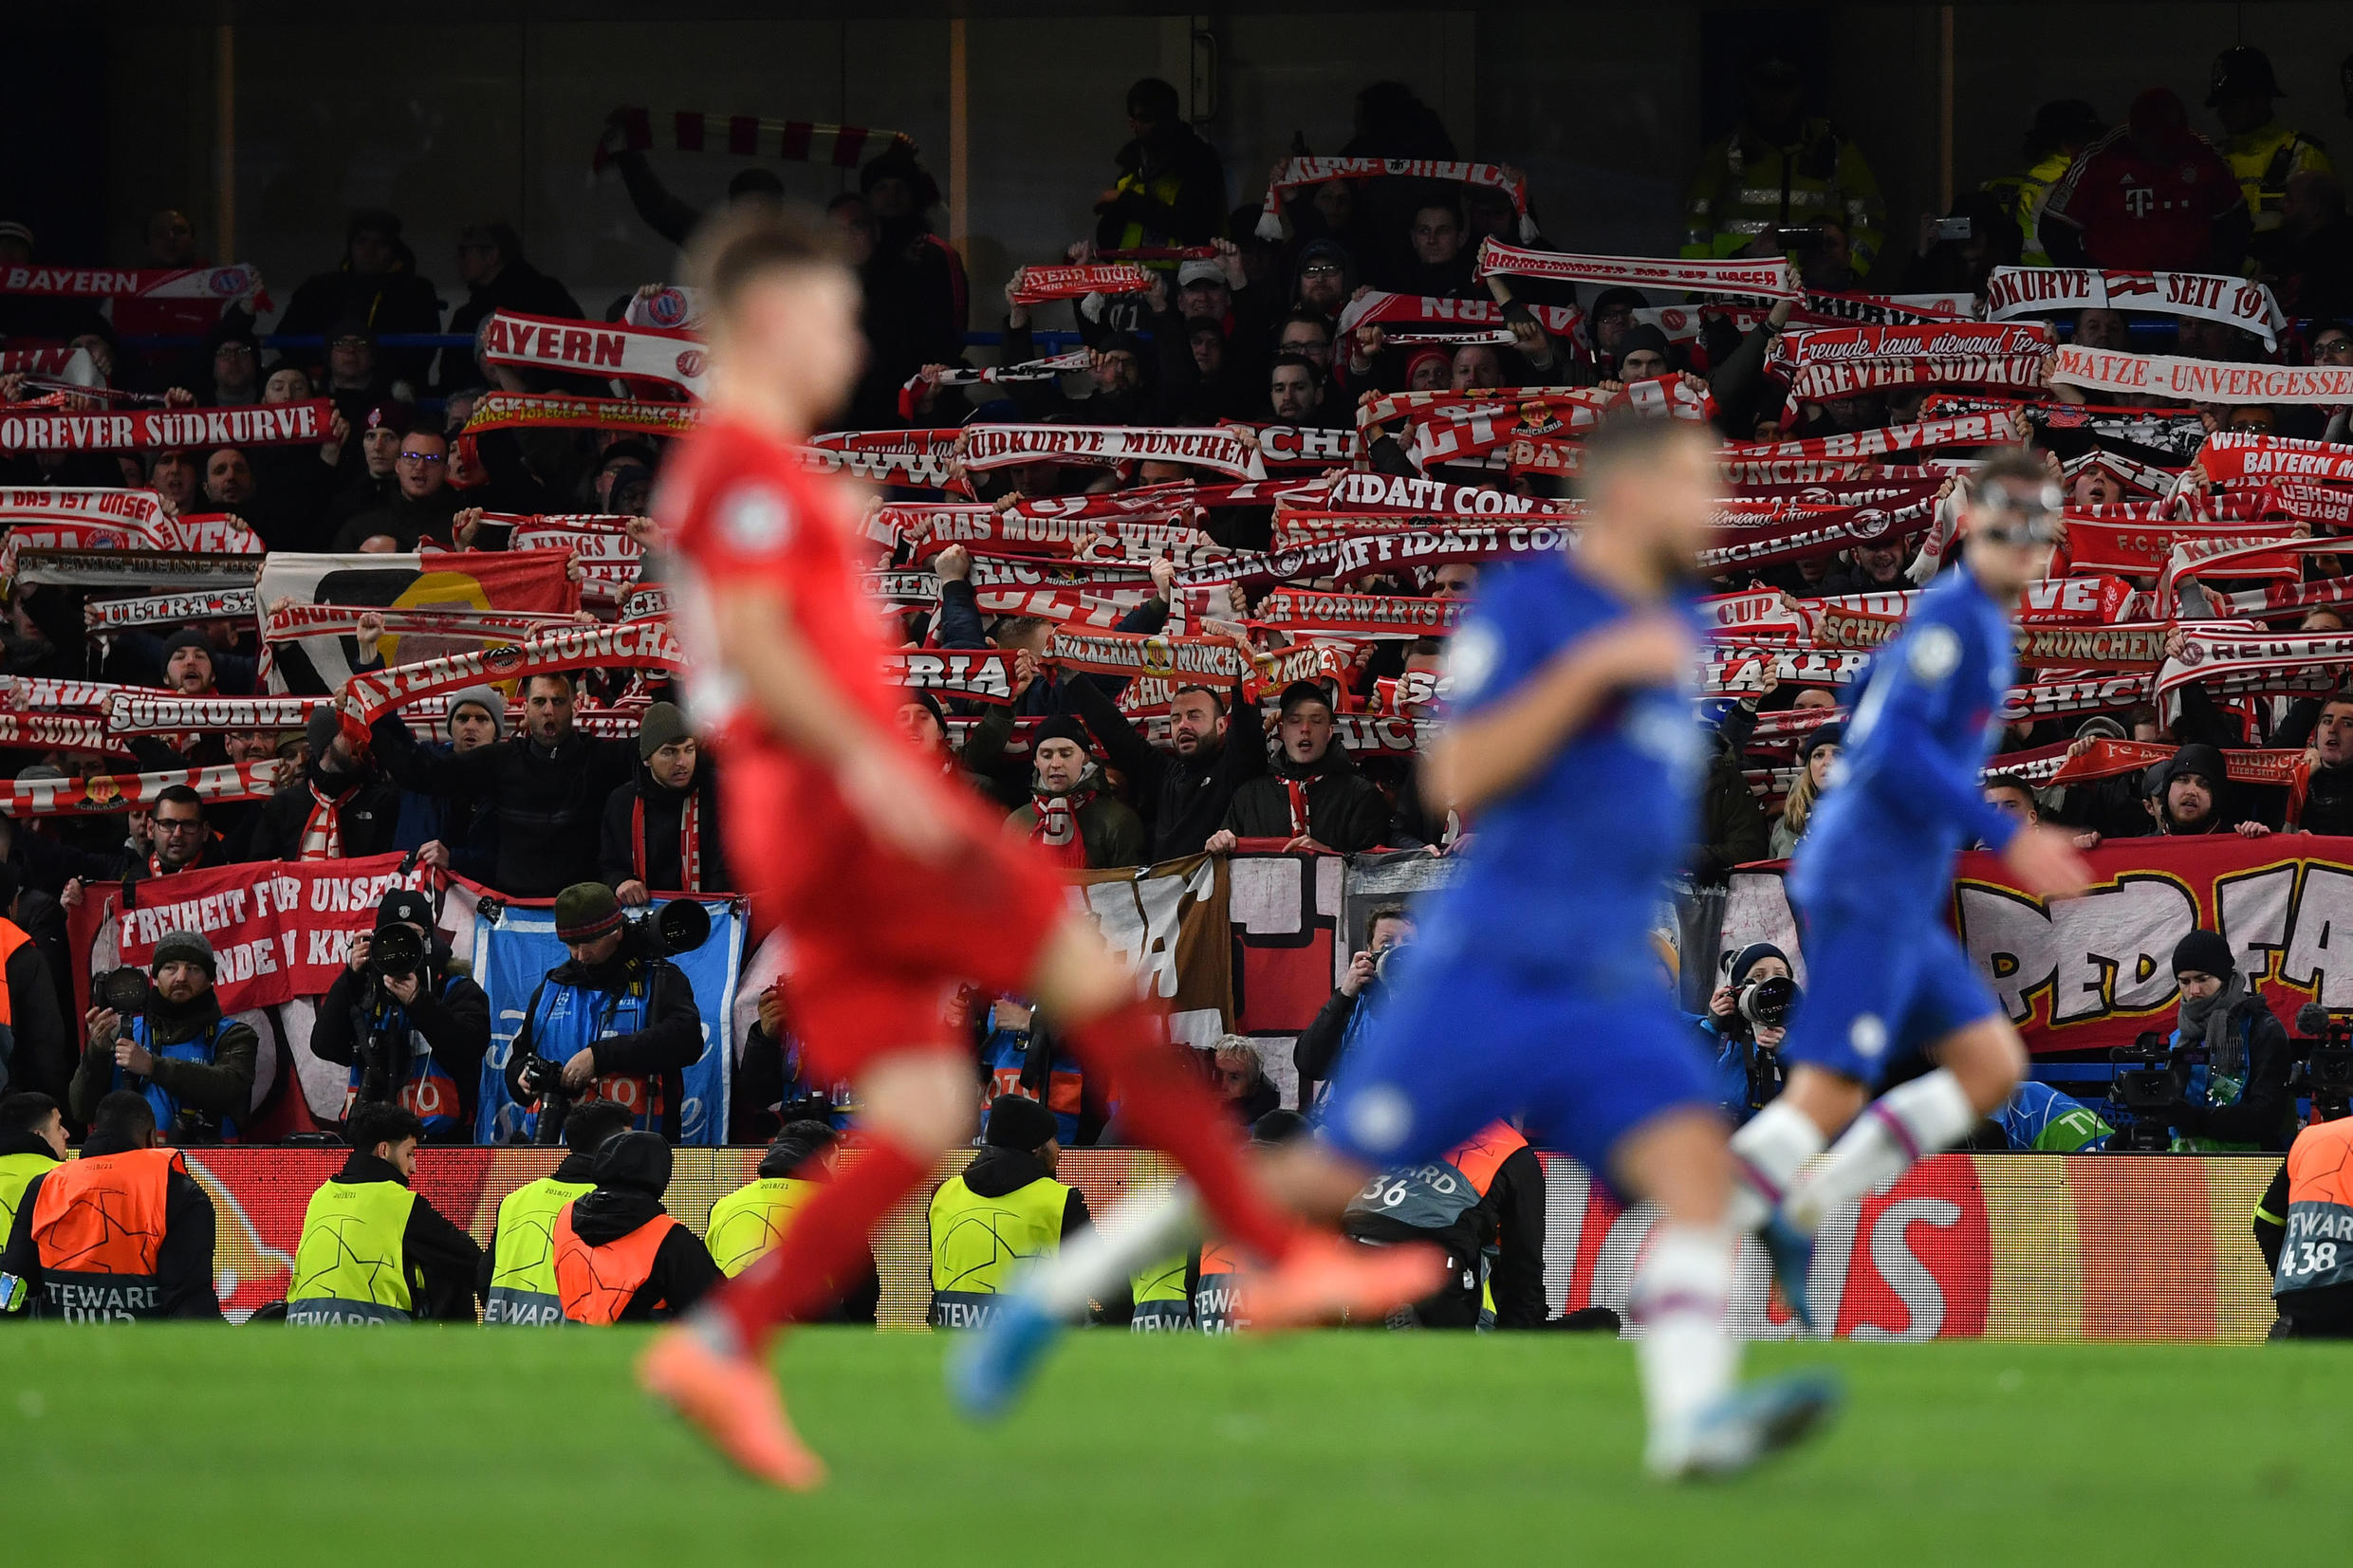 Bayern fans at Chelsea's Stamford Bridge for last month's first leg